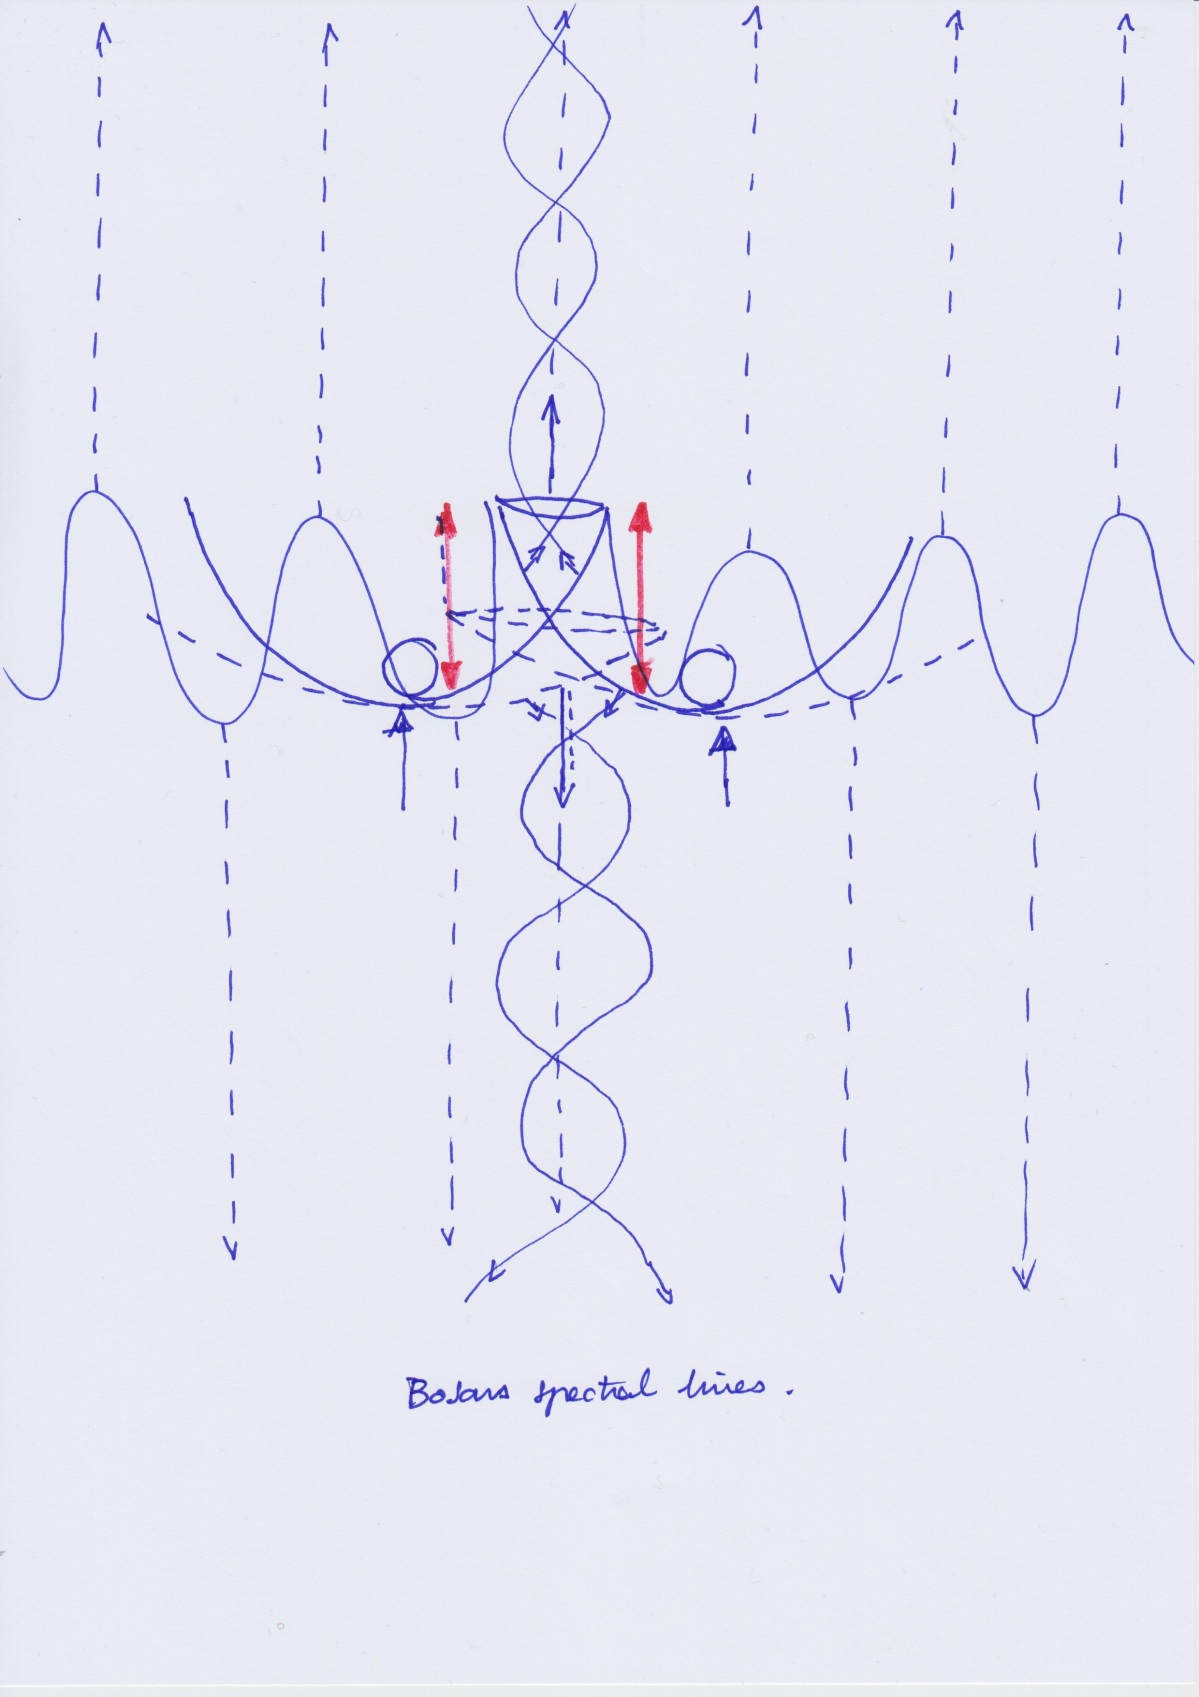 Spectral_Lines_Bosons